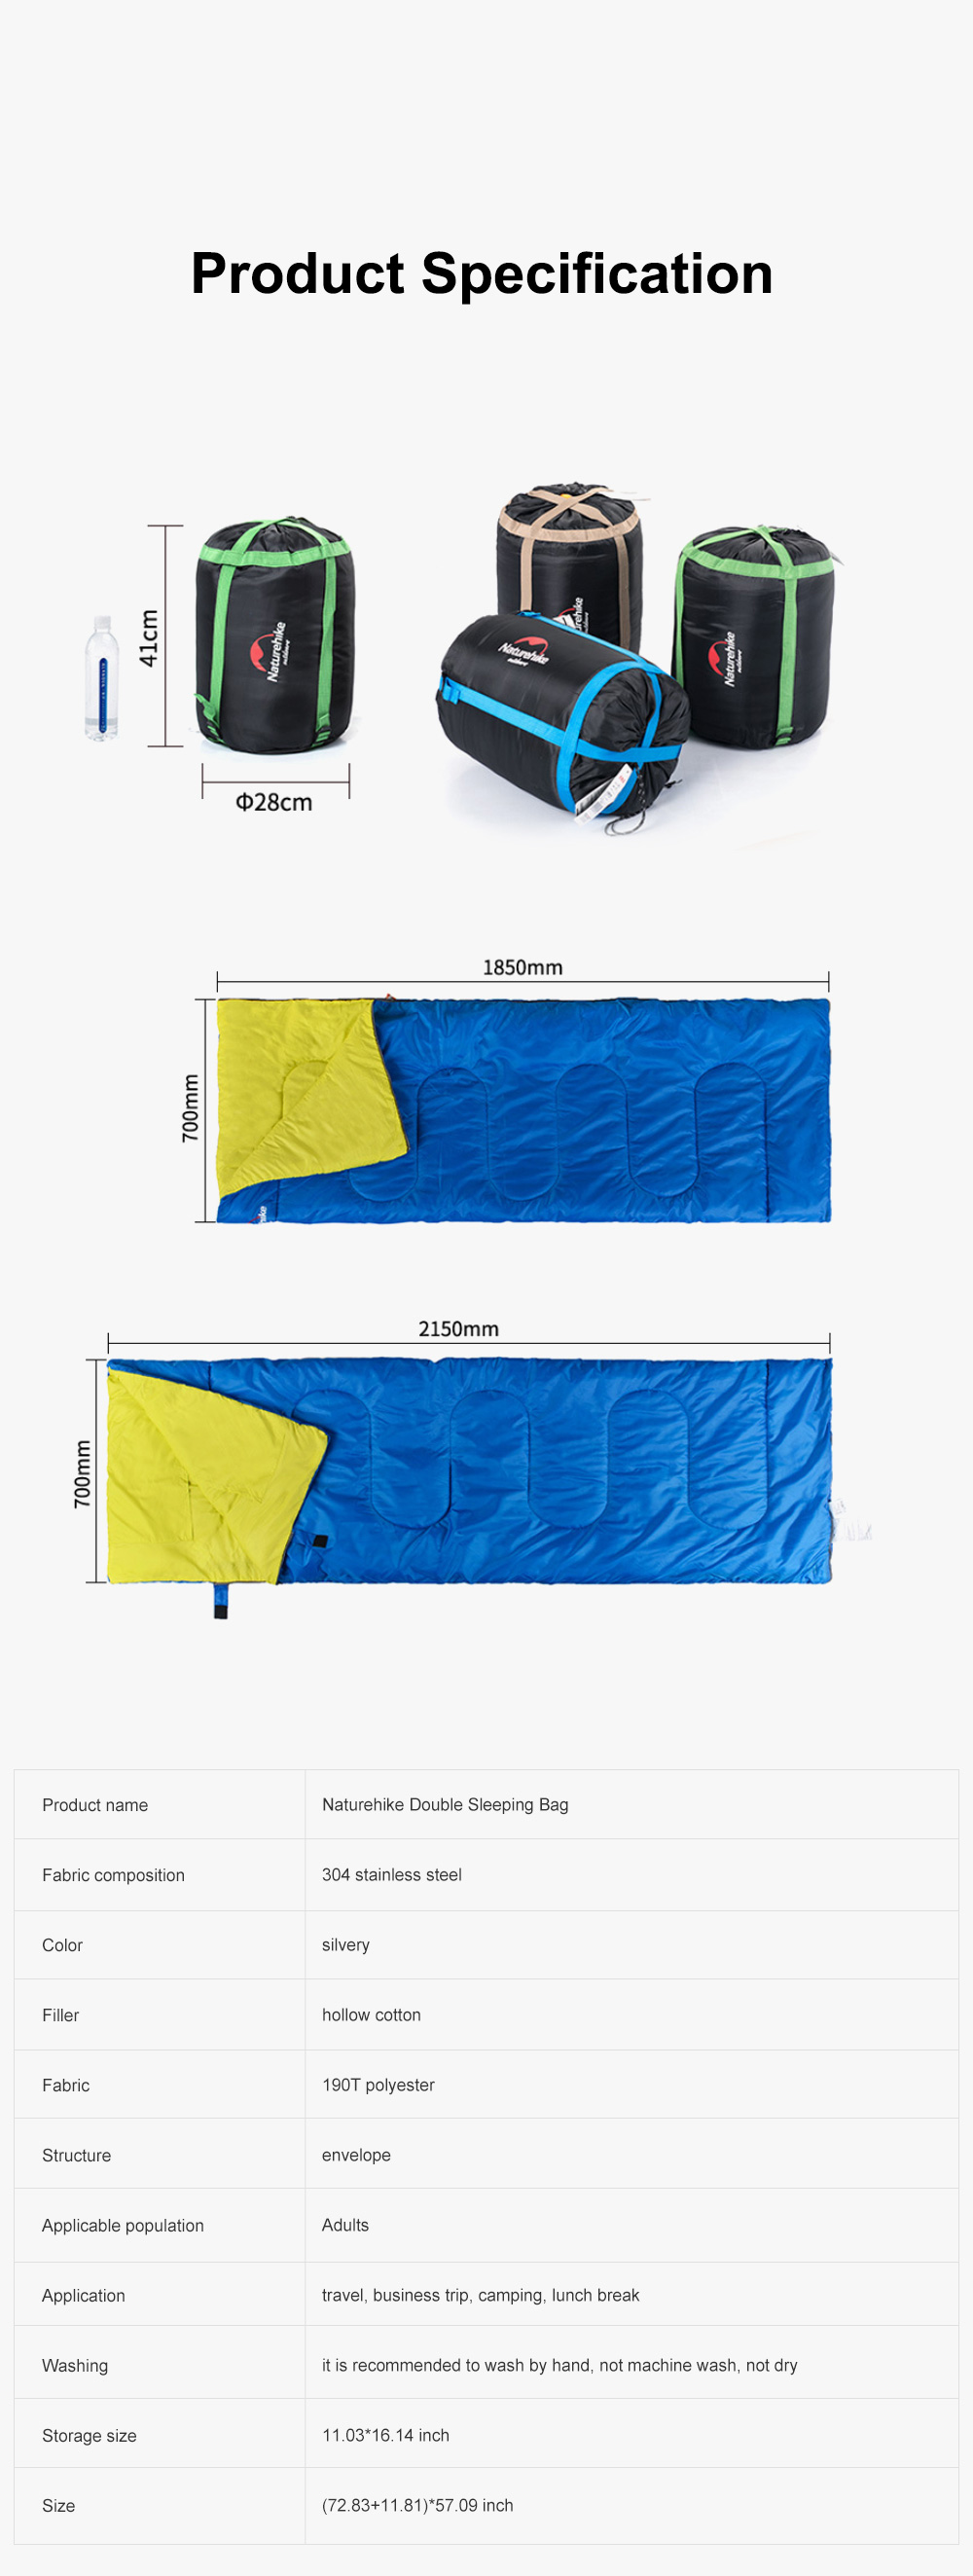 Naturehike Sleeping Bag for Two Adult Outdoor Camping Tent Cotton Sleeping Bag for Lunch Break in Four Seasons Office 7